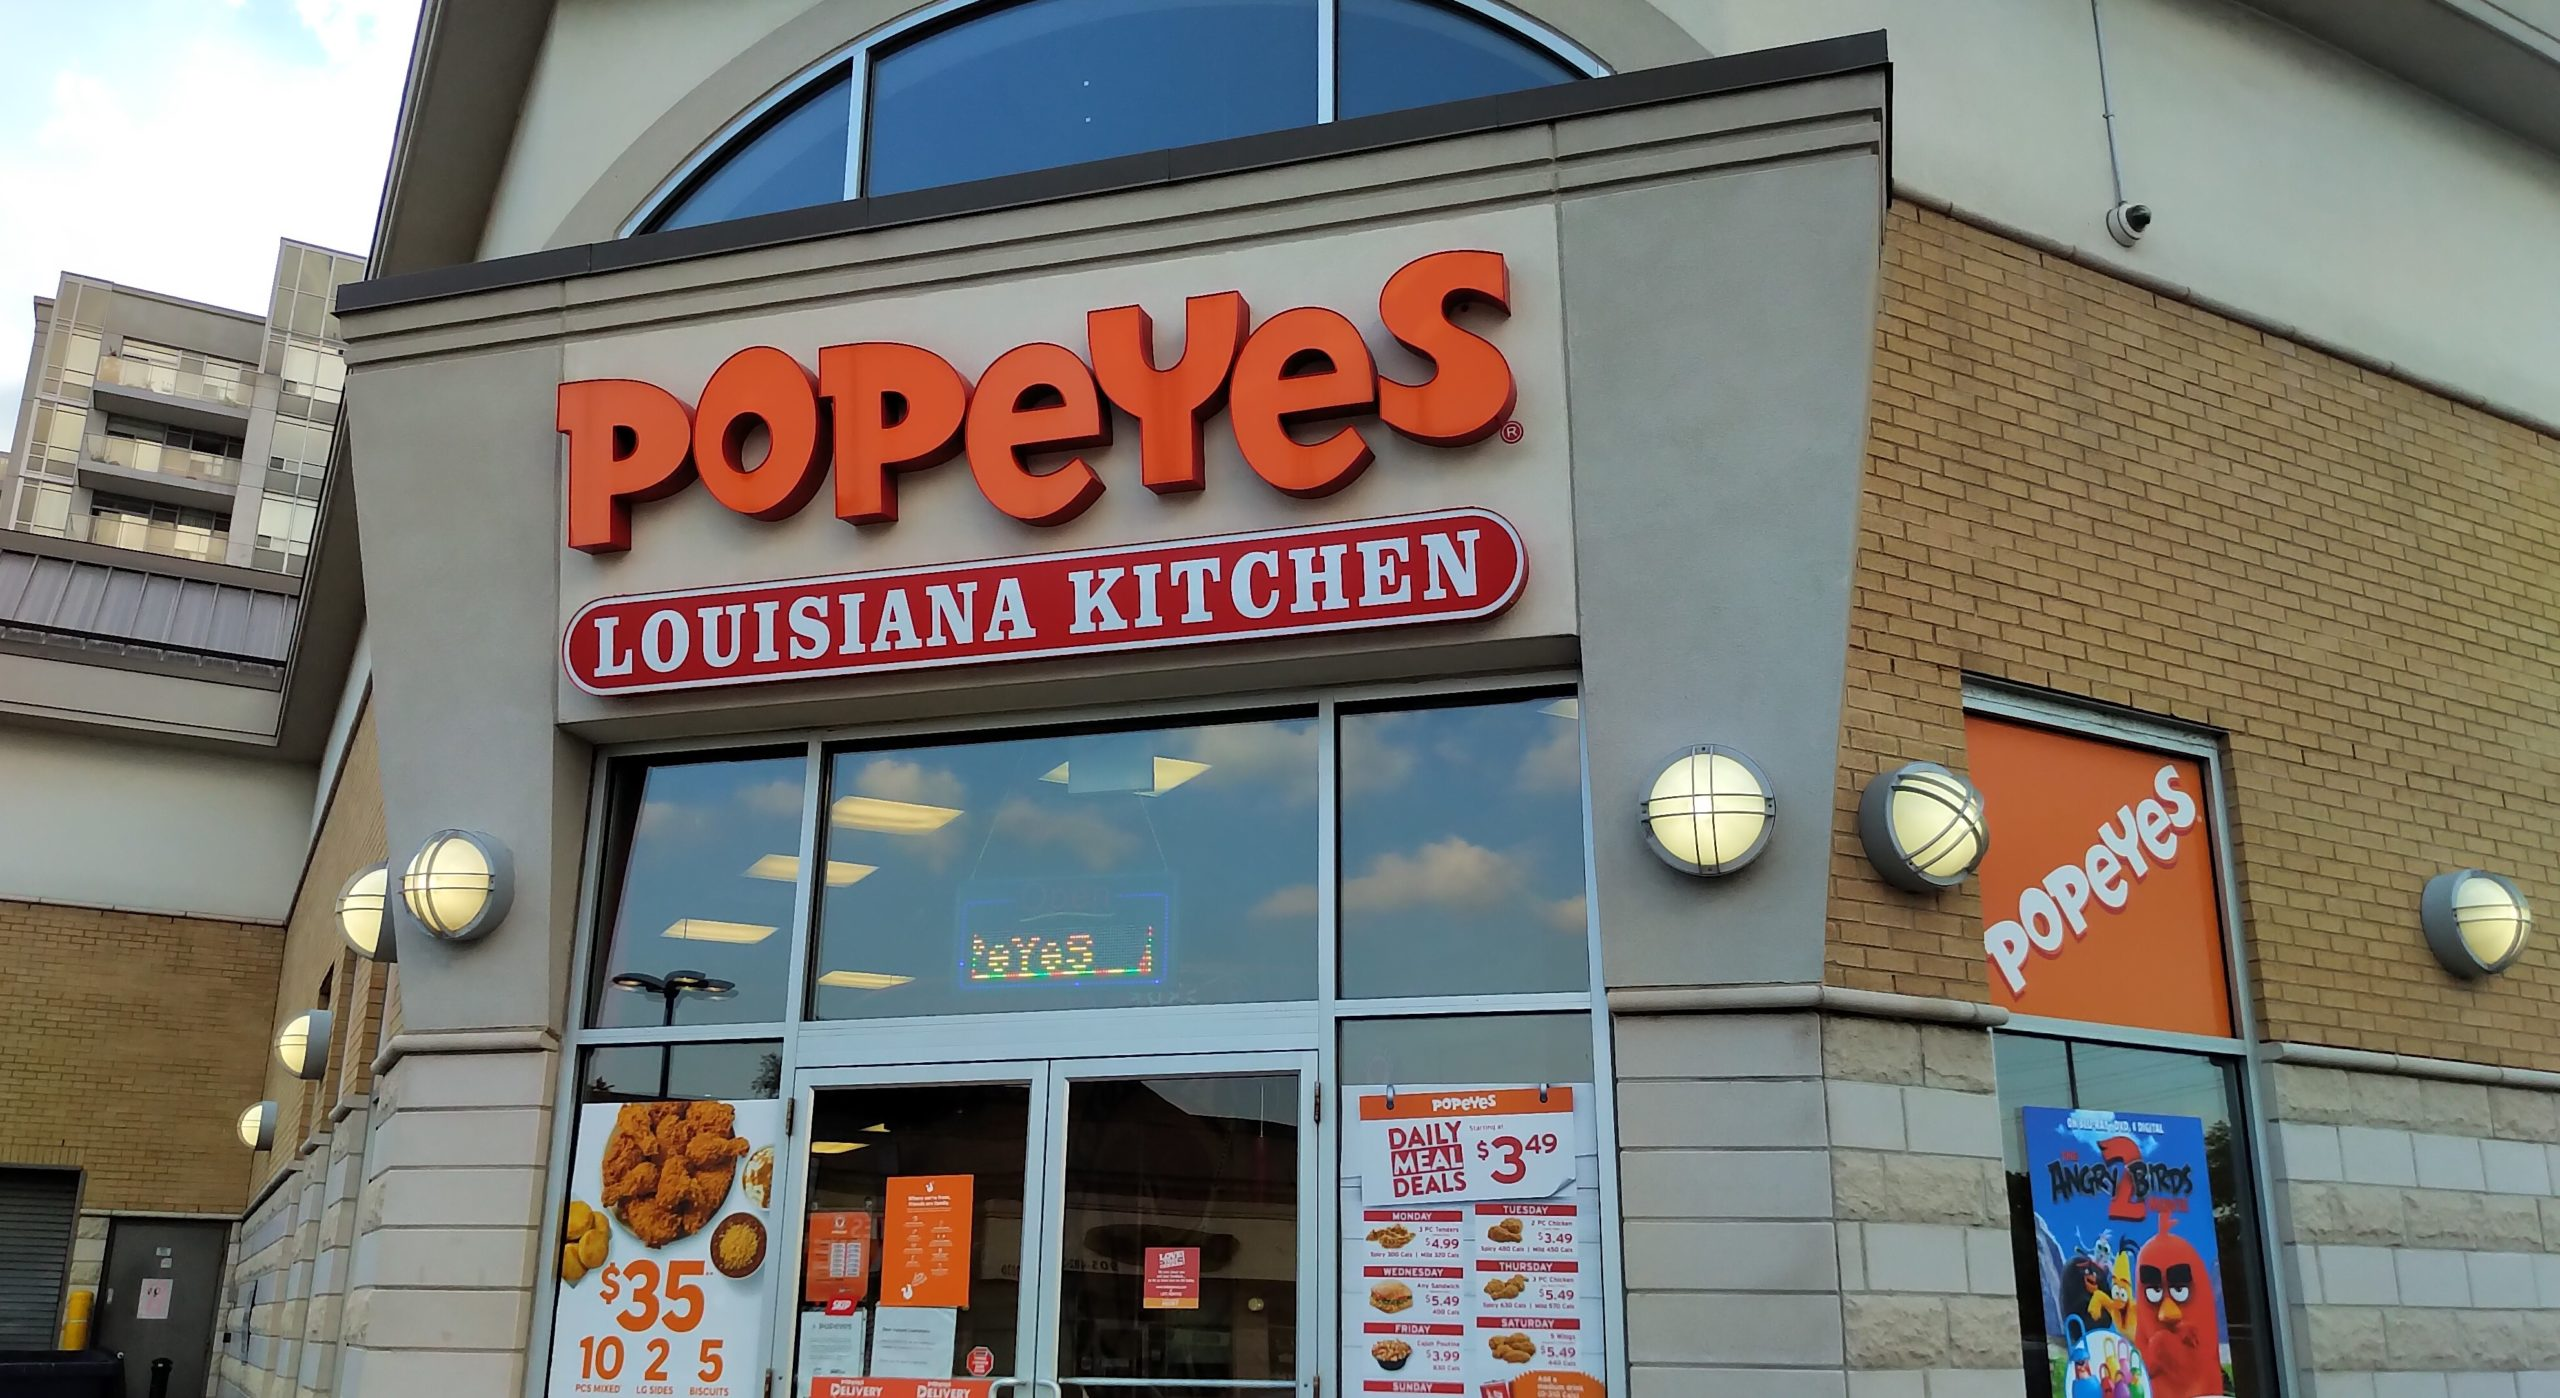 Popeyes - Tenant Mandate - S&H Realty Corporation, Brokerage